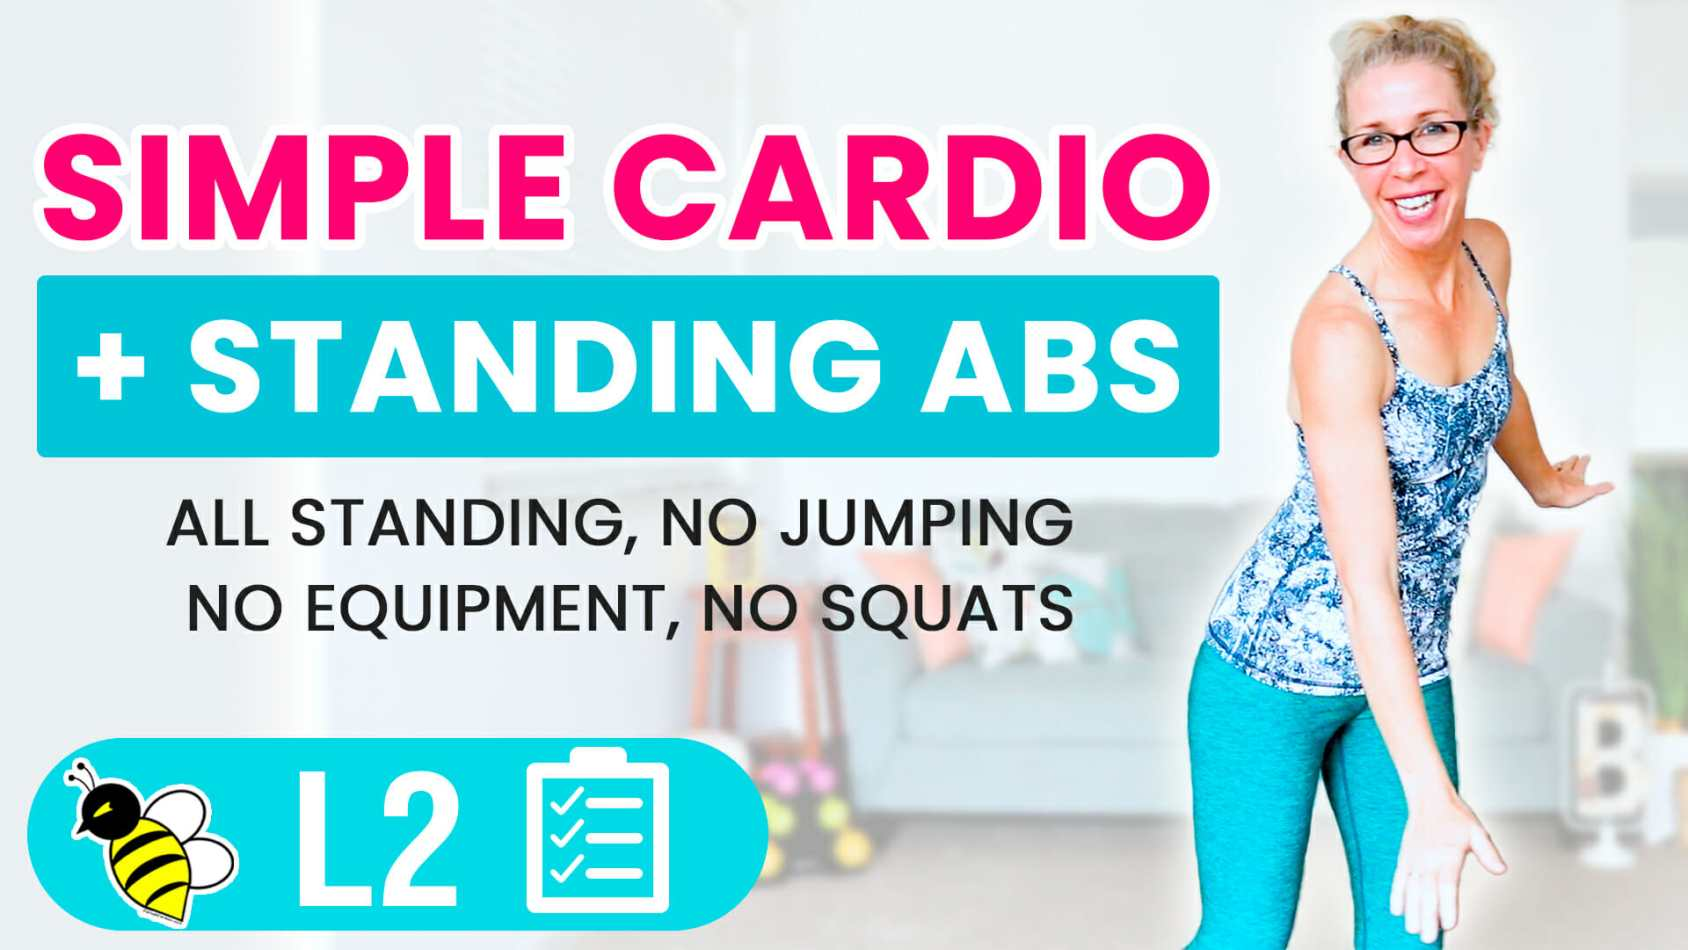 30 minute Simple CARDIO + Standing ABS HIIT for BEGINNERS